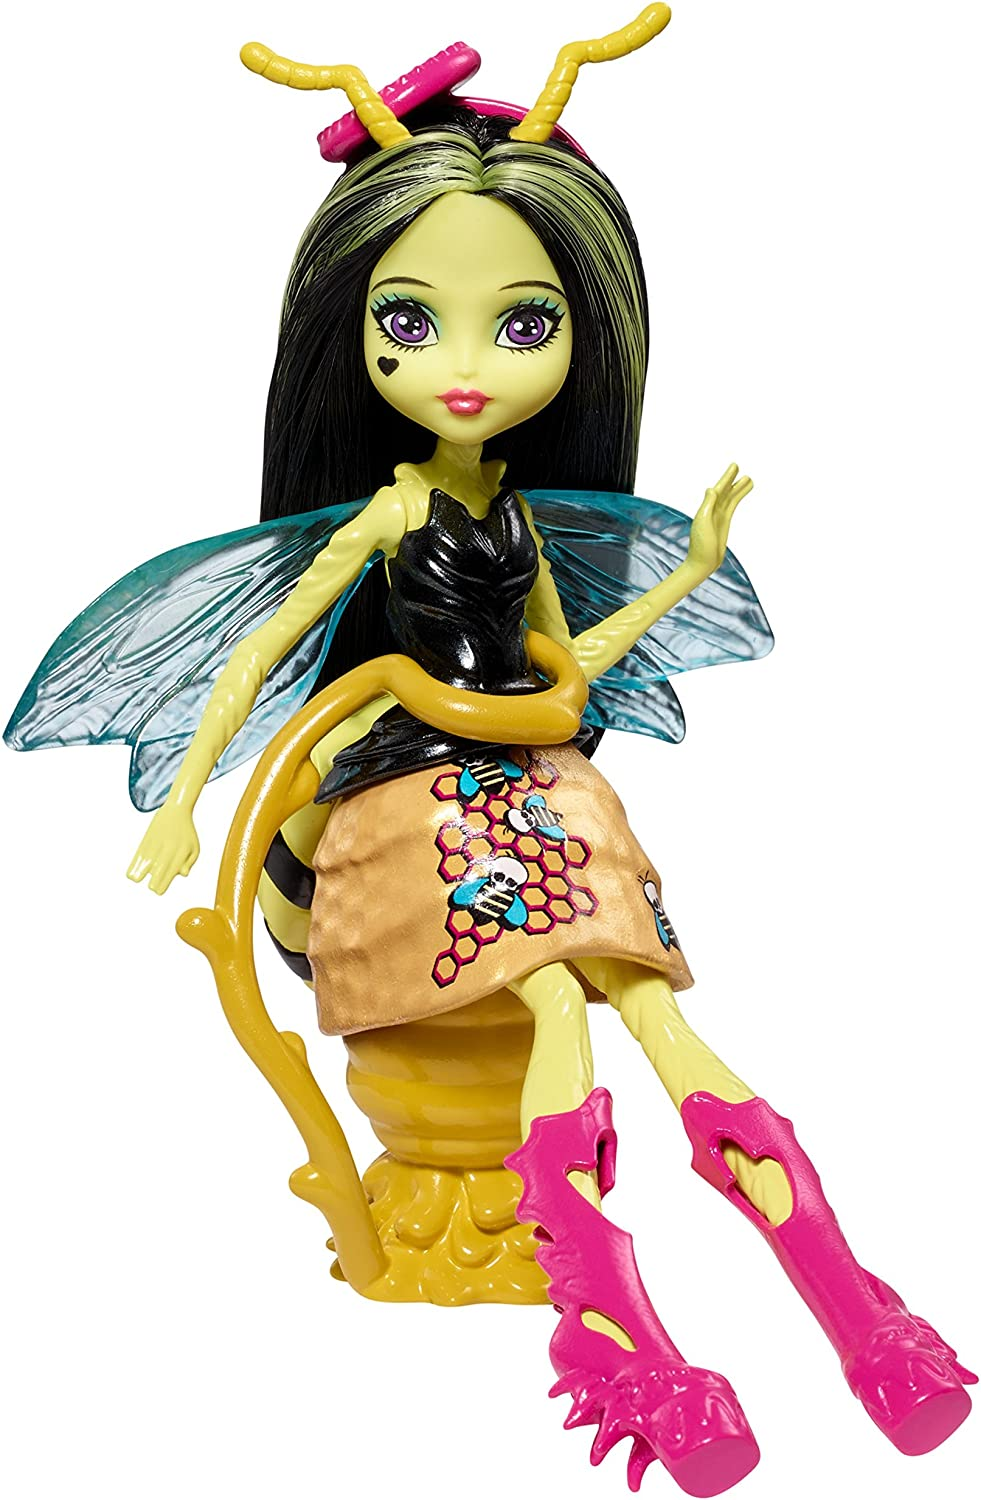 MONSTER HIGH GARDEN GHOULS WINGED CRITTERS BEETRICE DOLL